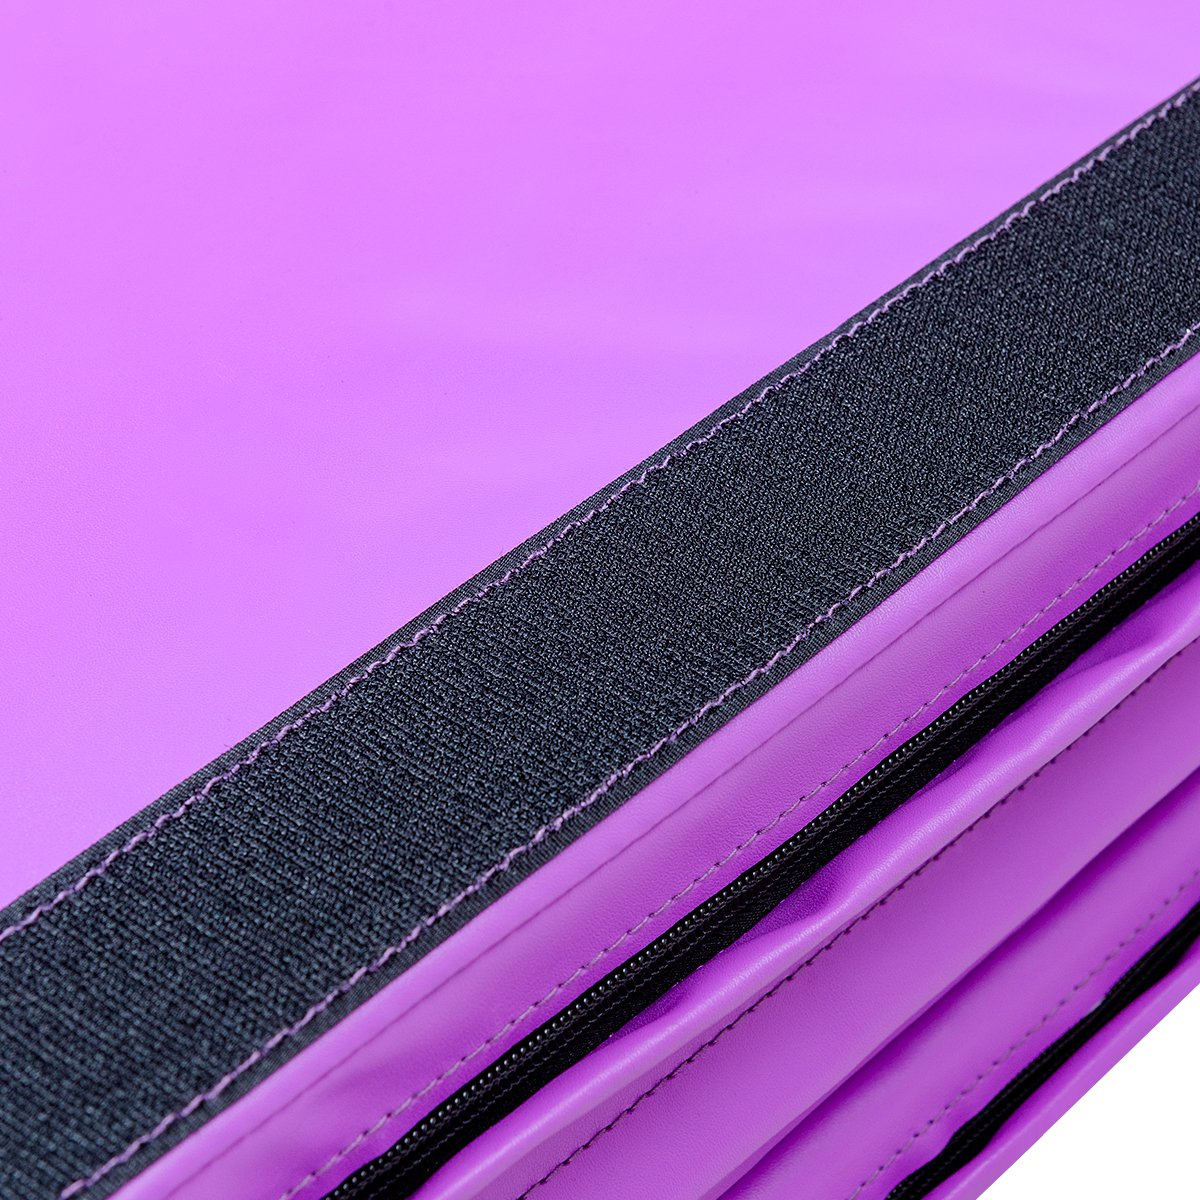 Giantex 4'x10'x2 Gymnastics Mat Thick Folding Panel for Gym Fitness with Hook & Loop Fasteners (Pink/Purple-Double Diamond)